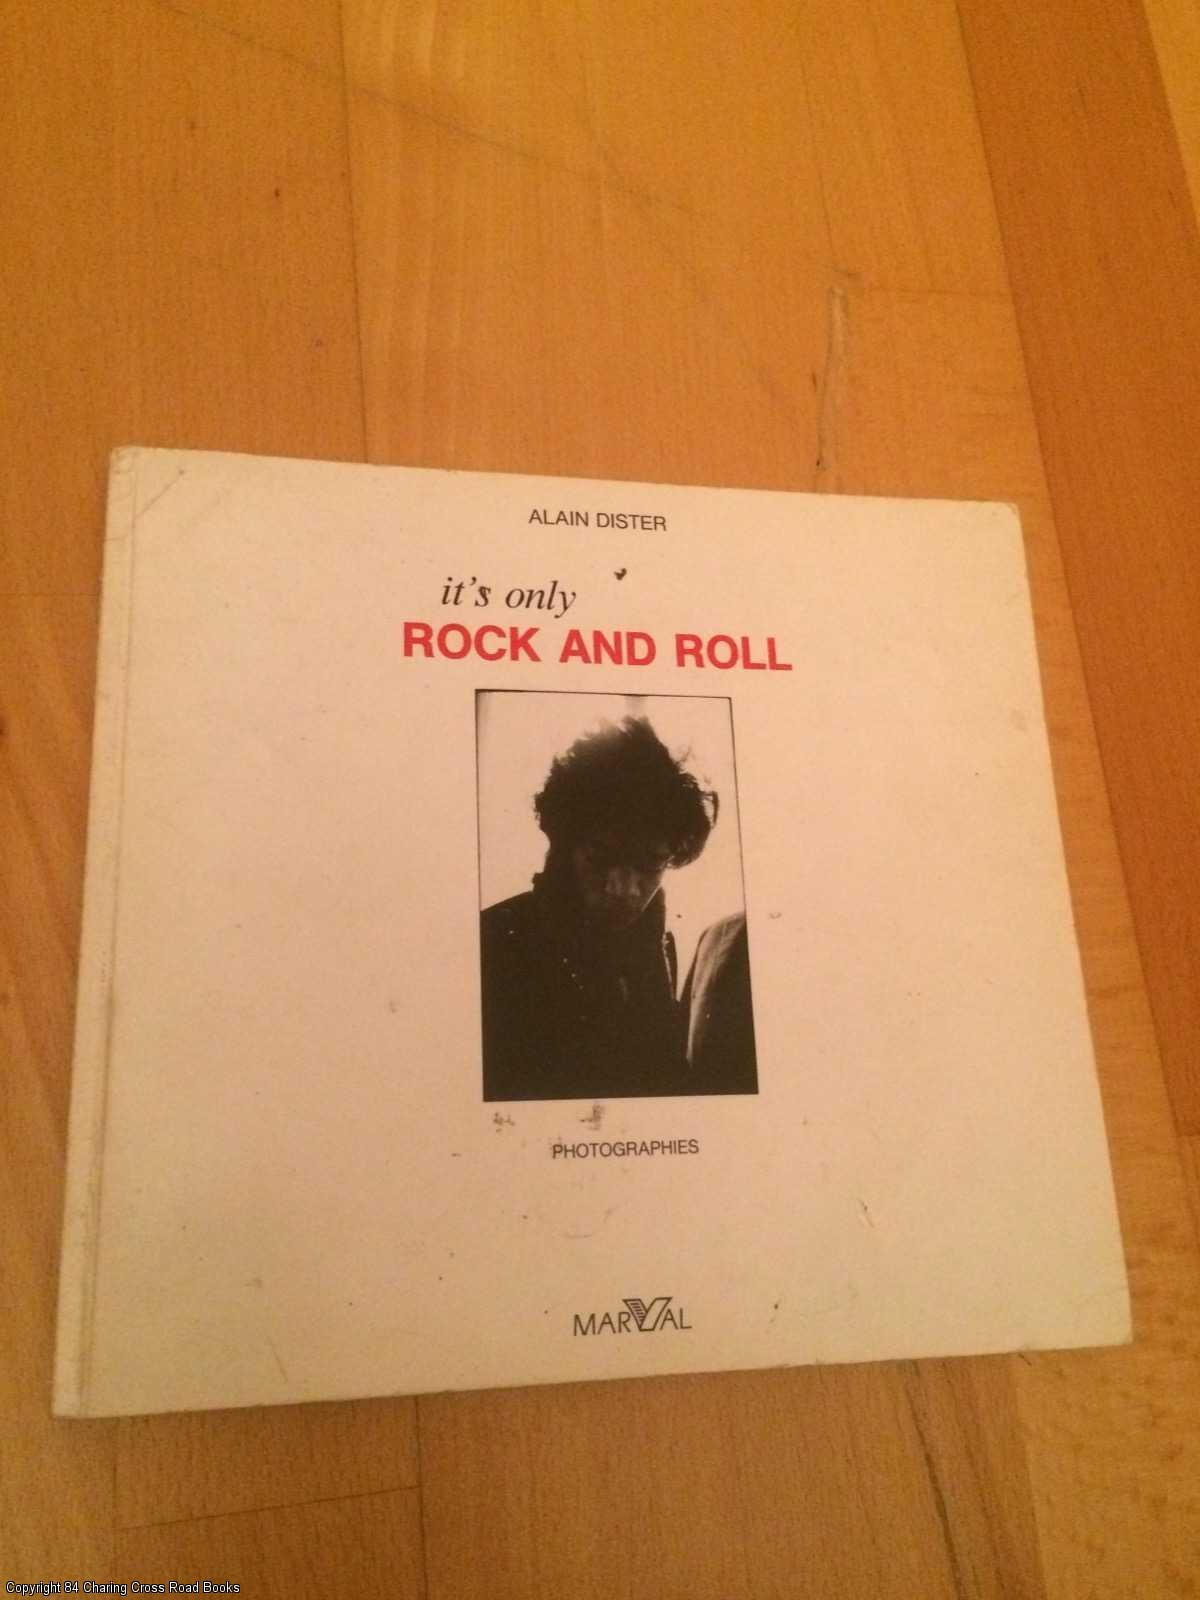 DISTER, ALAIN - It's Only Rock and Roll